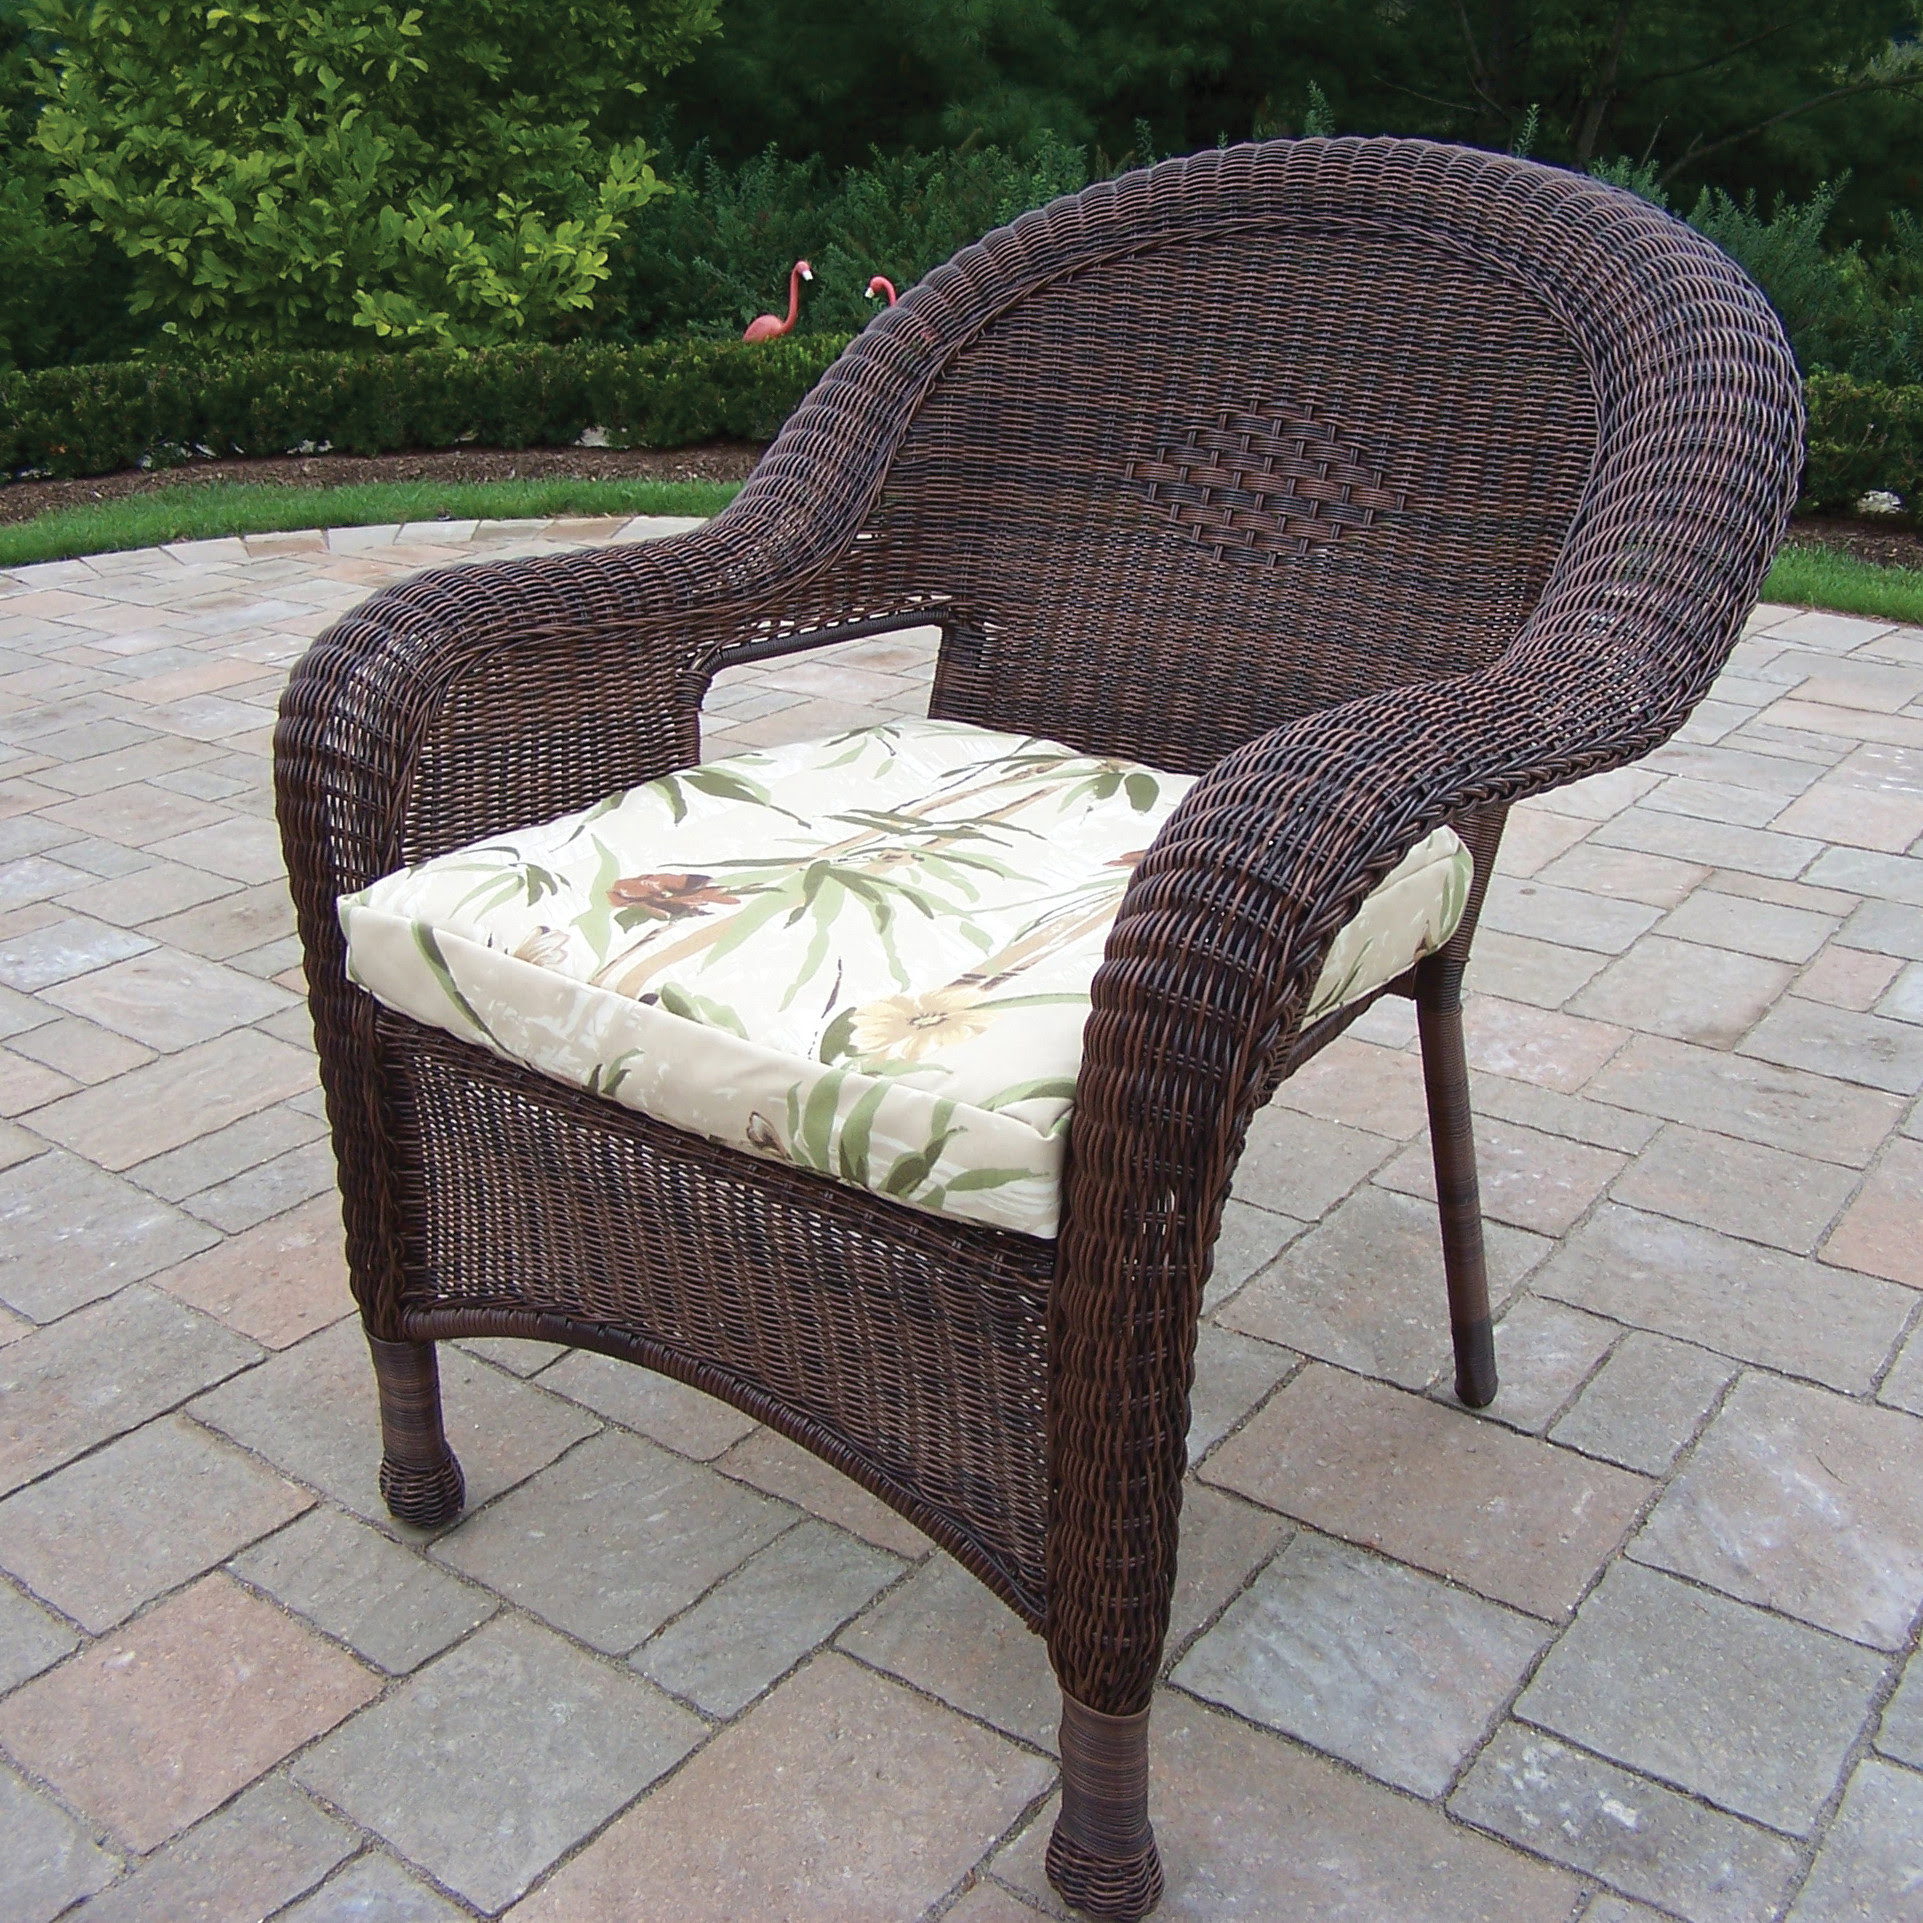 Outdoor wicker furniture for children - perfect addition ...